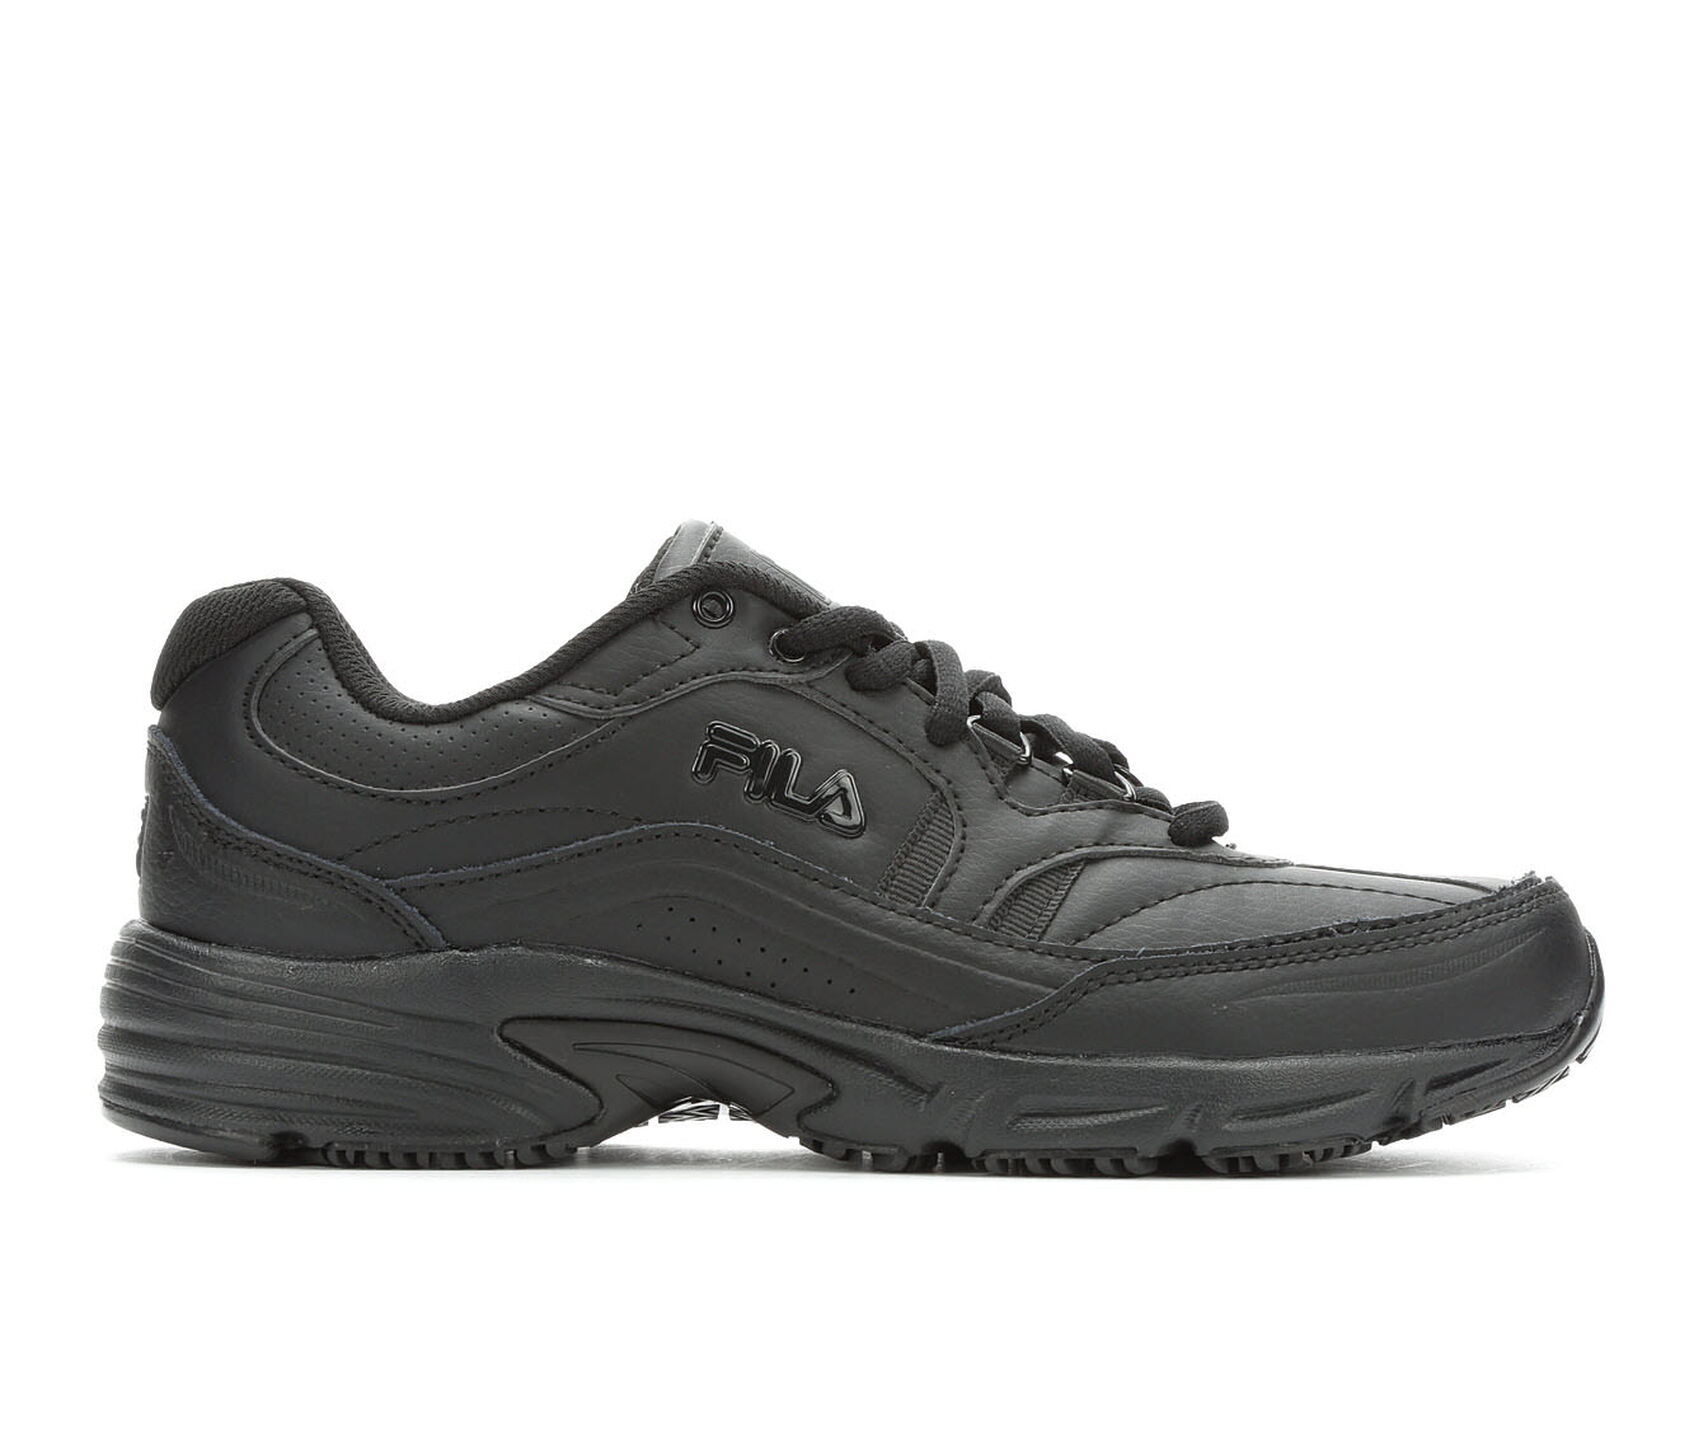 5fdb65c9 Men's Fila Memory Workshift Safety Shoes | Shoe Carnival